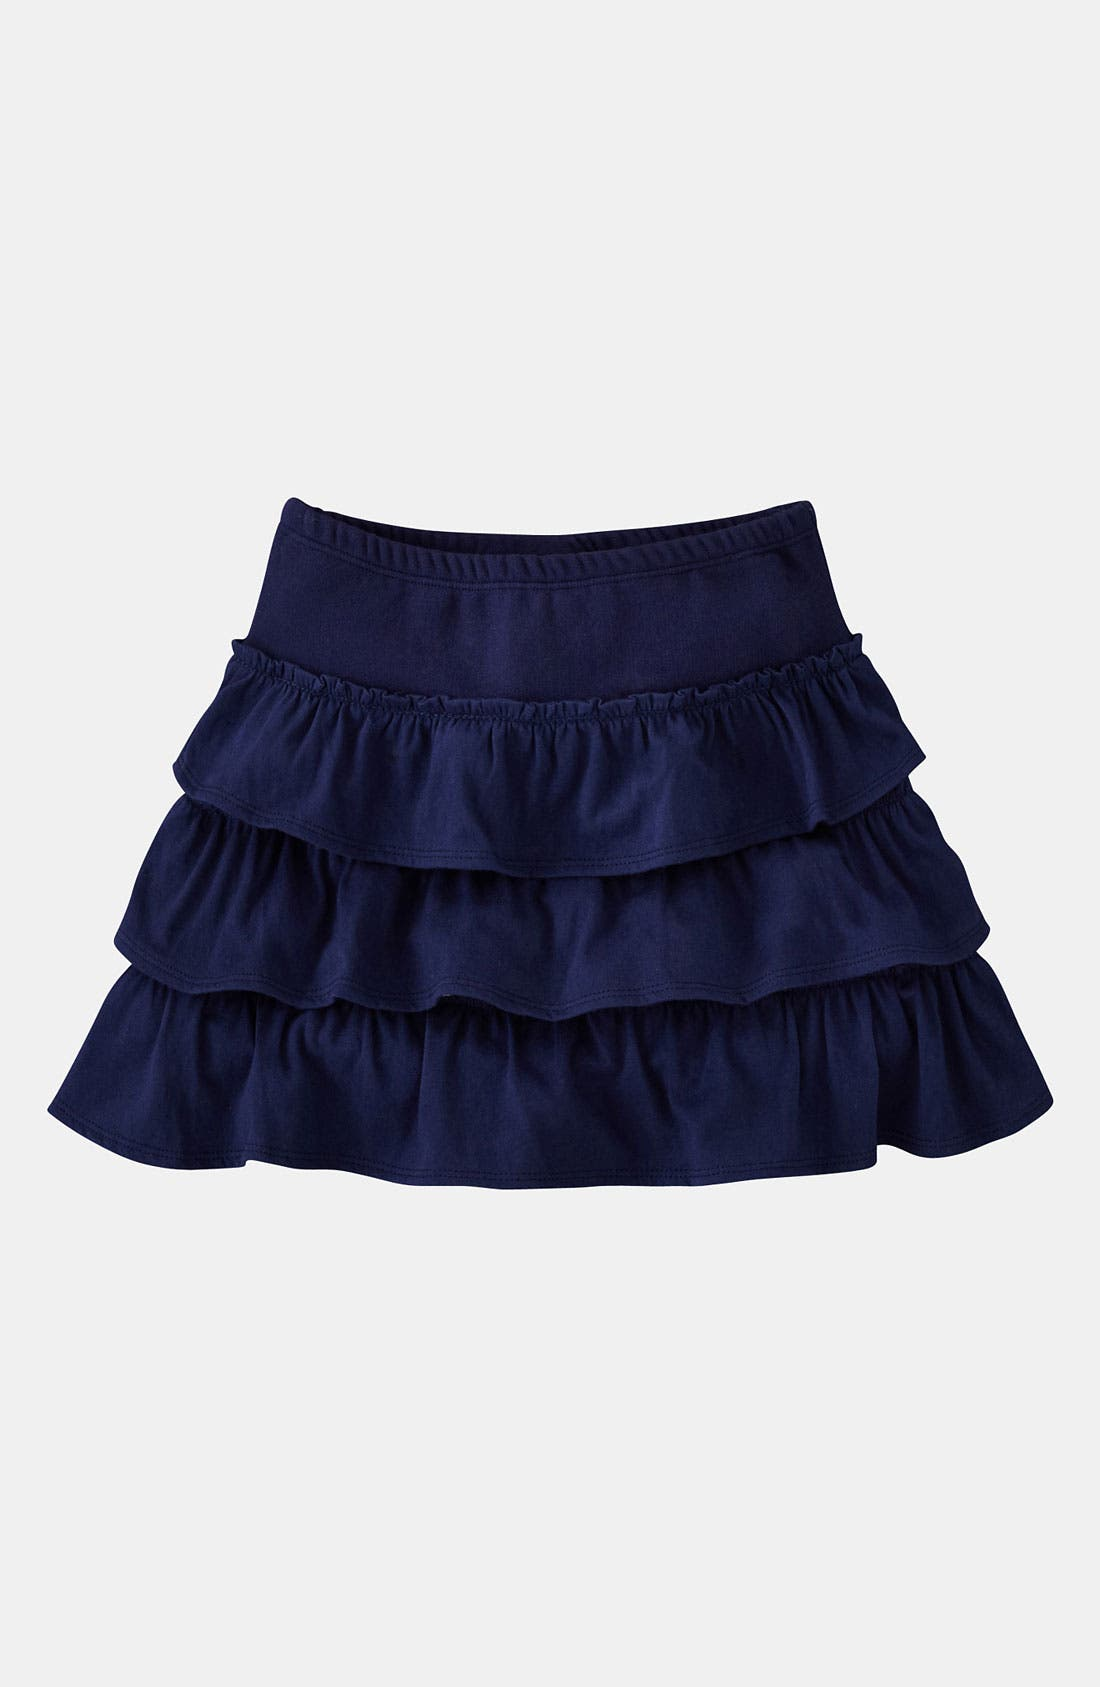 Alternate Image 1 Selected - Mini Boden Ruffle Jersey Skirt (Toddler)